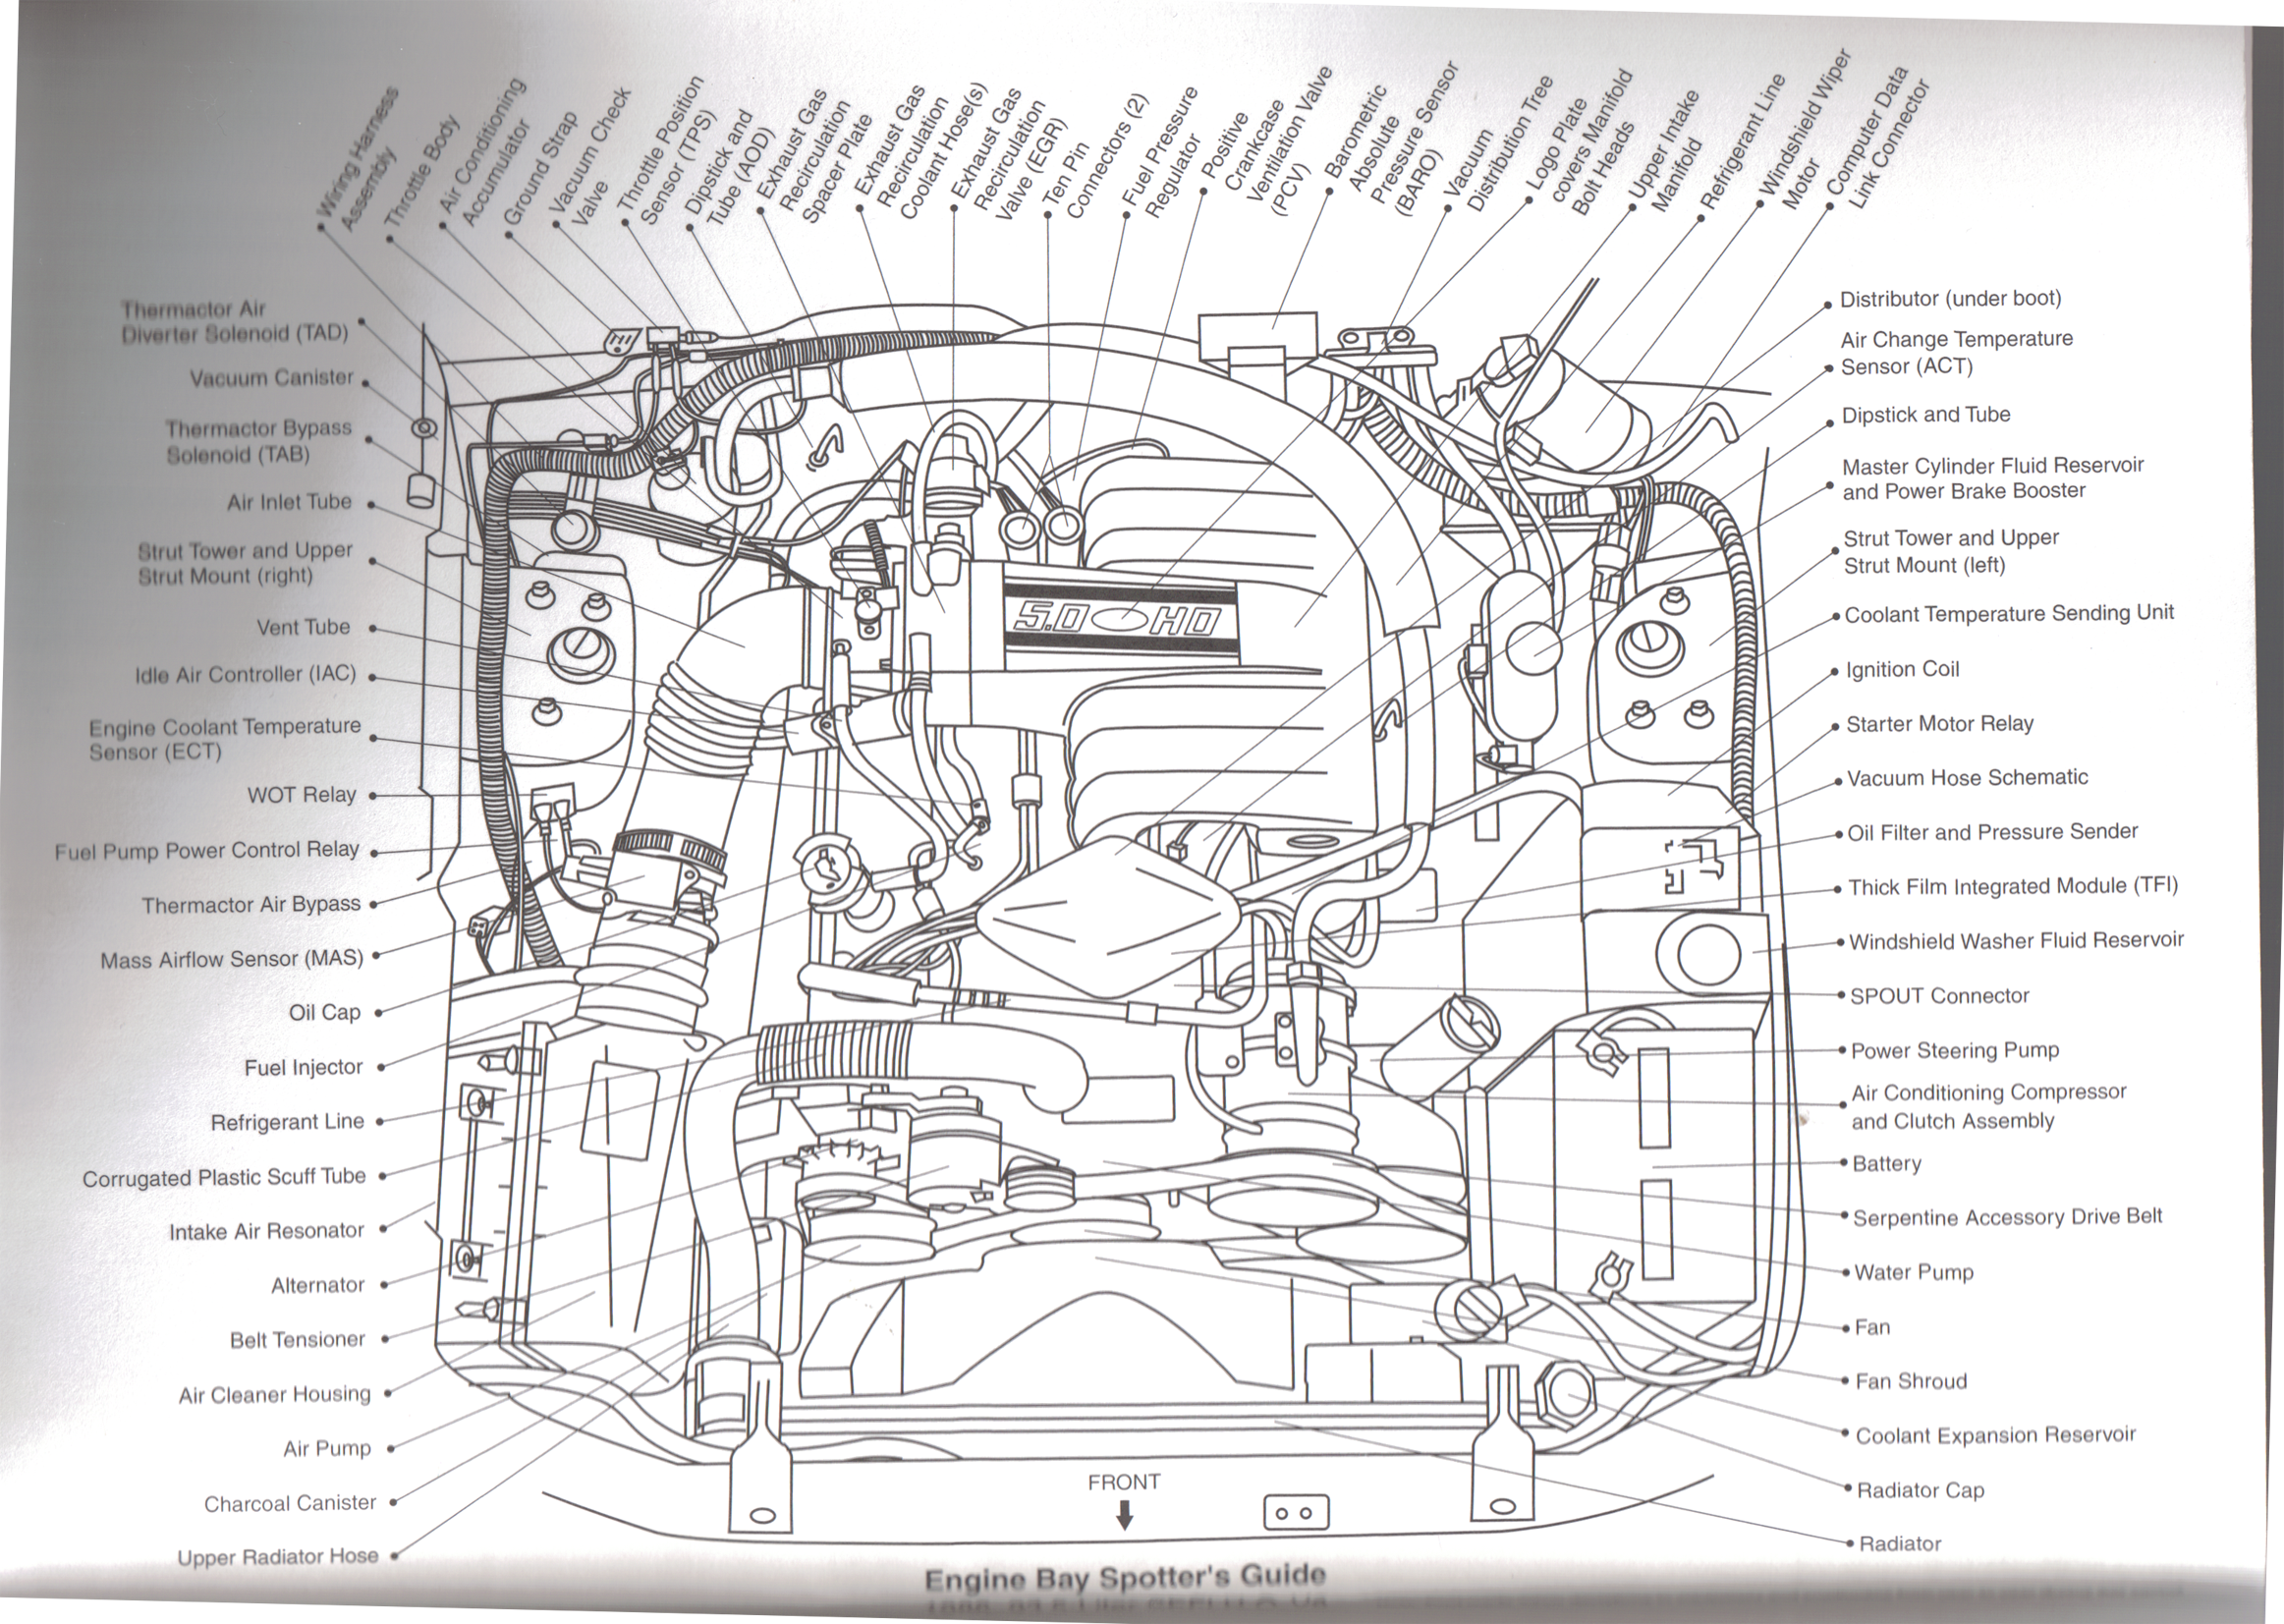 1987 1993 foxbody 5.0 sefi v8 engine part diagram everything you need to know about 1979 1993 foxbody mustangs Wiring Harness Wiring- Diagram at n-0.co